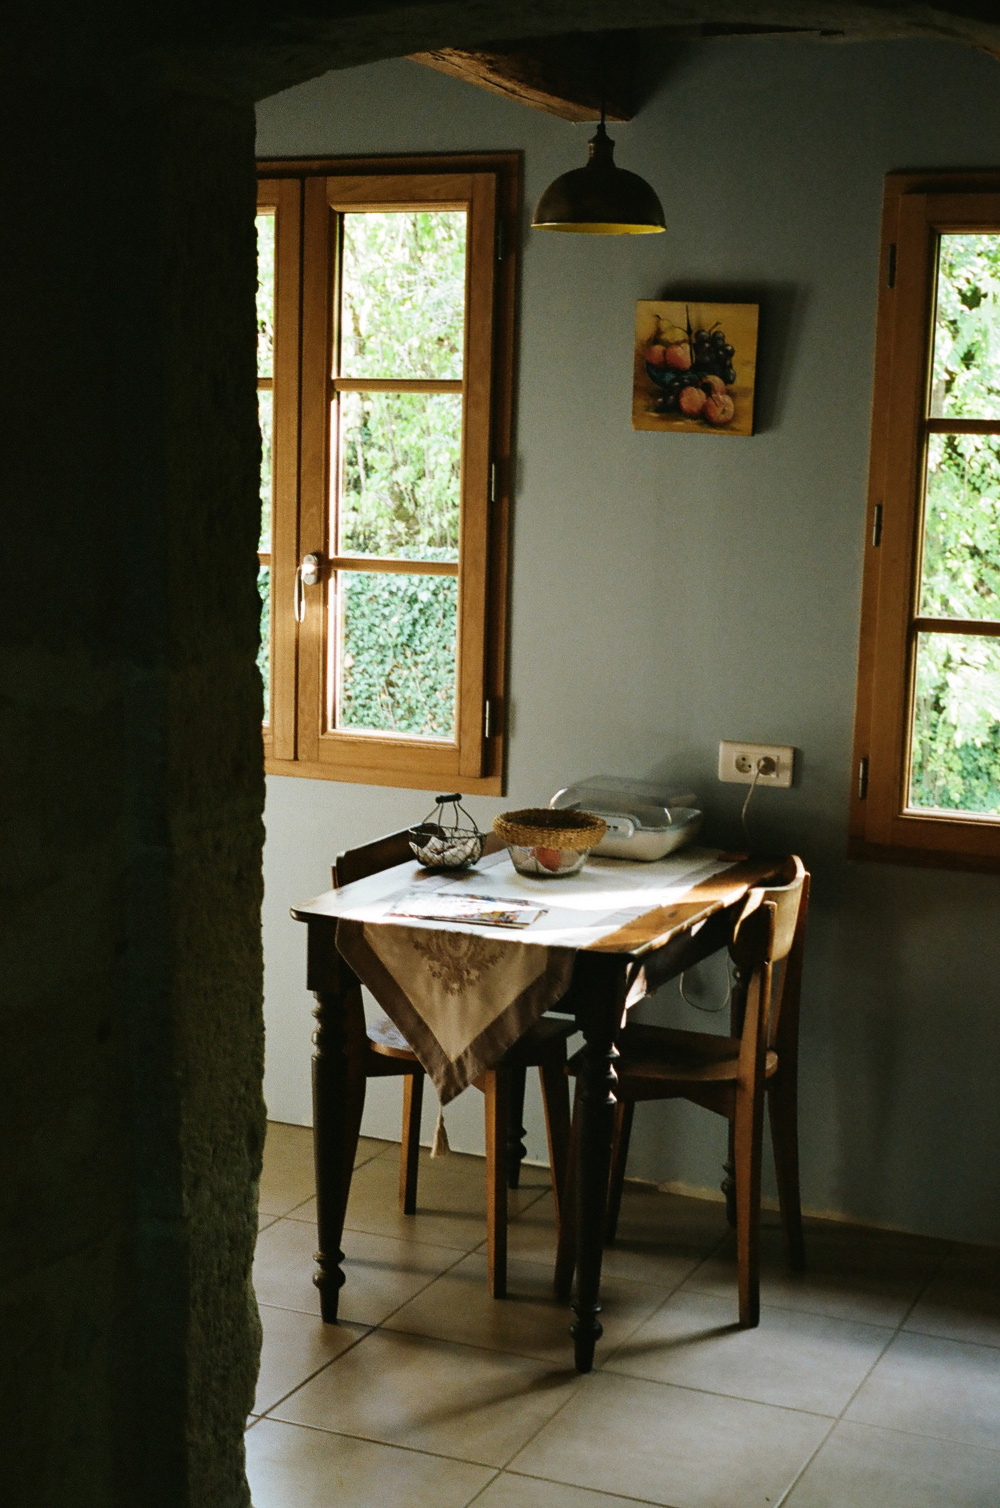 Une Cuisine De Campagne Au Style Rustique Chic Countryside Kitchen Table In Southern France Idee De Decoration Decoration Rustique Decoration Maison